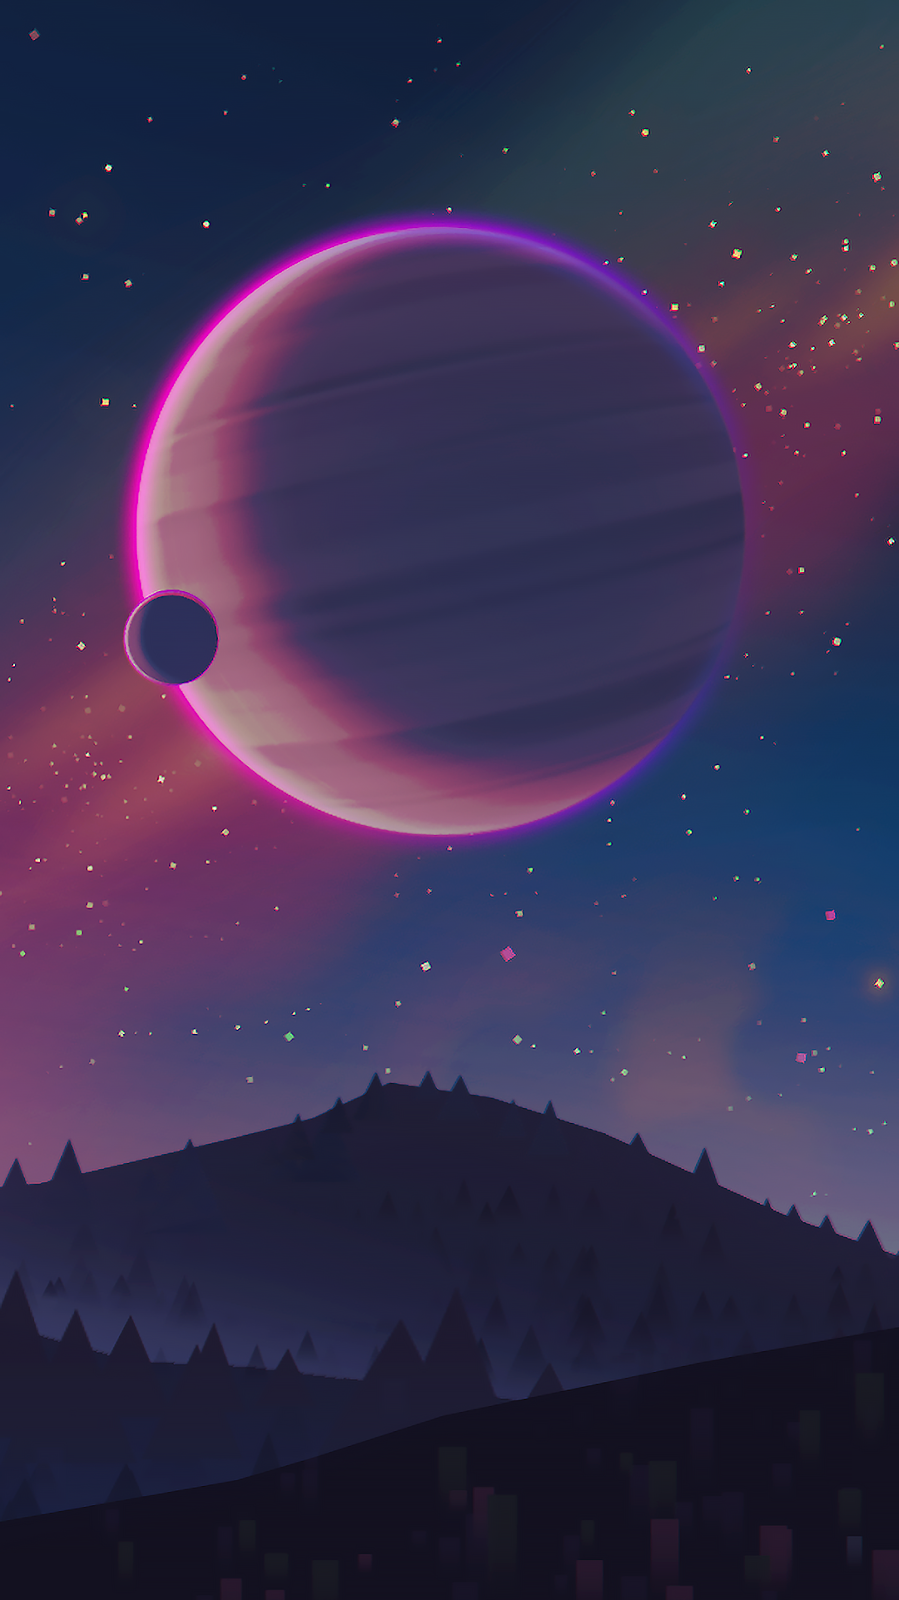 #space #wallpaper #illustration #planet